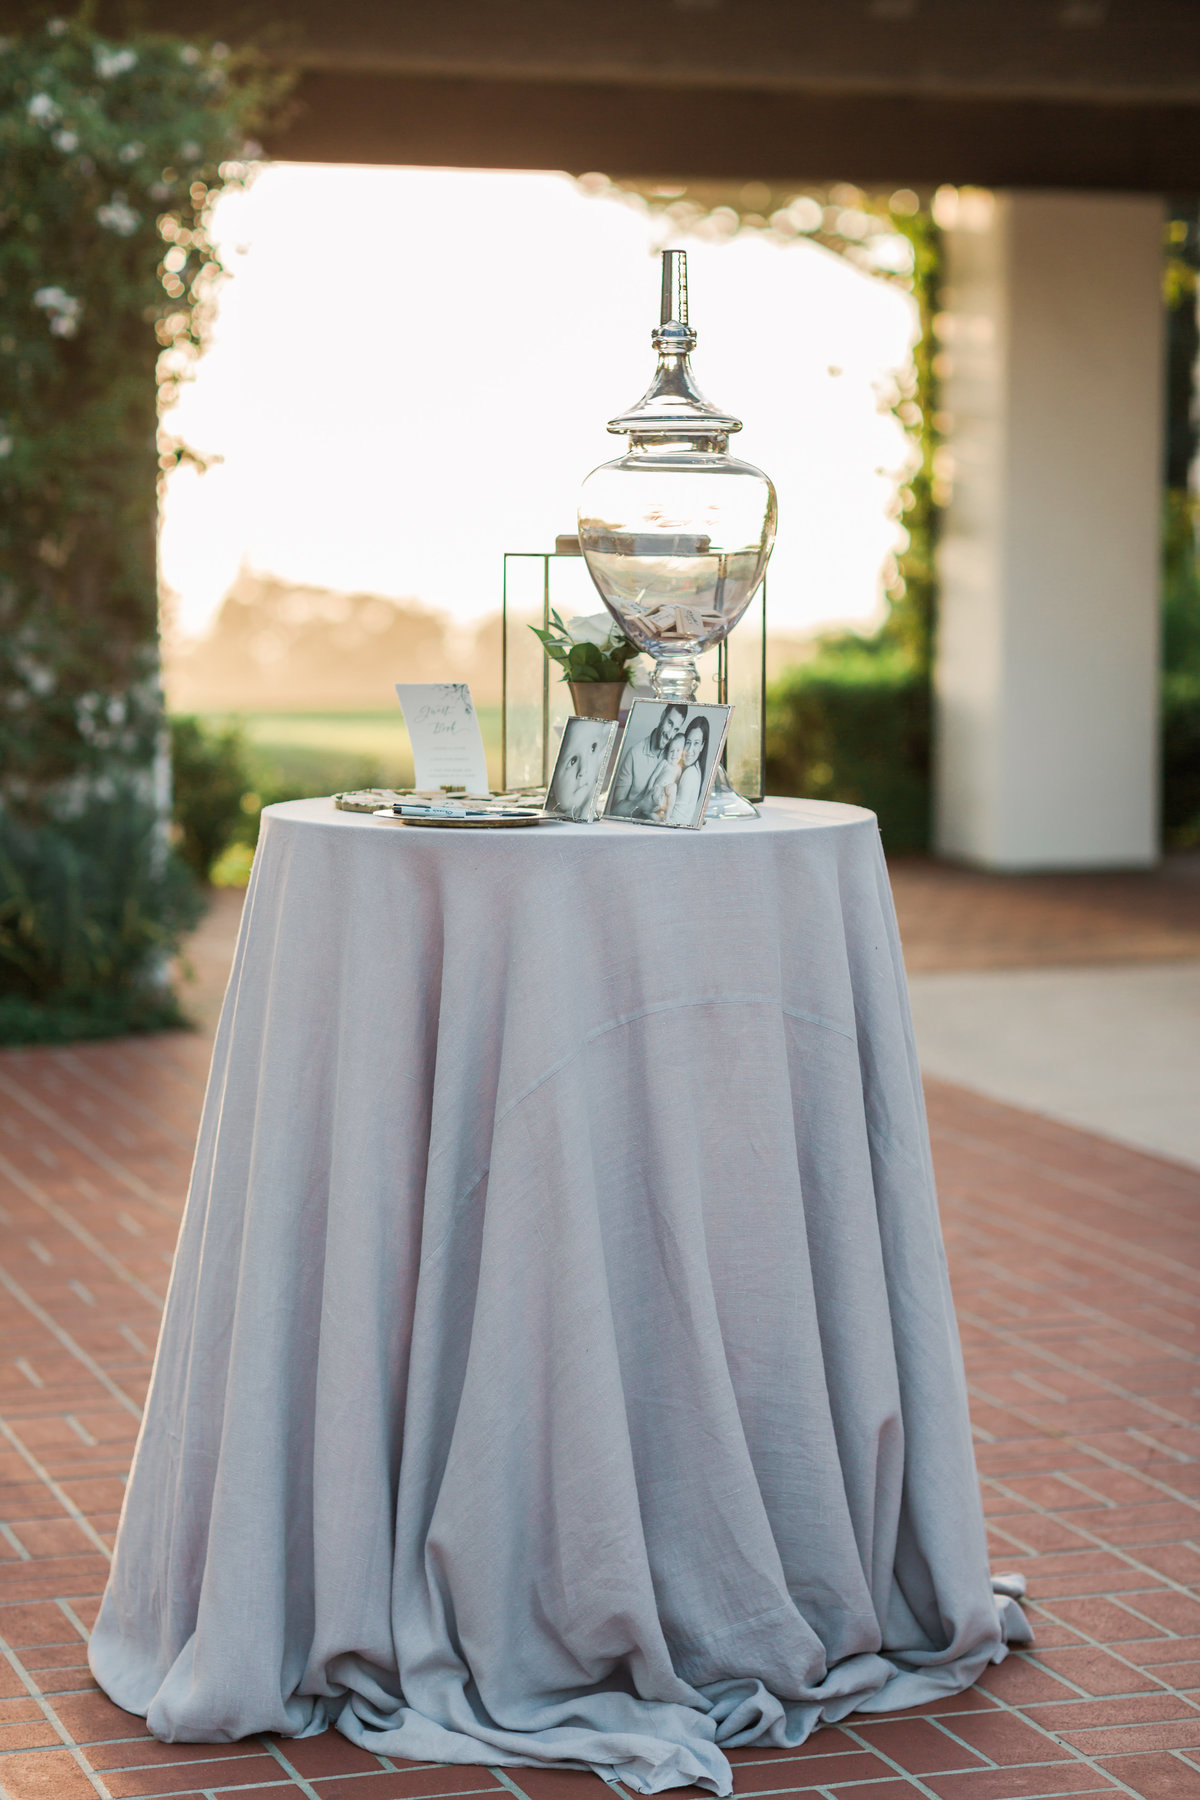 Carmel_Seaside_Chic_Wedding_Valorie_Darling_Photography - 125 of 134